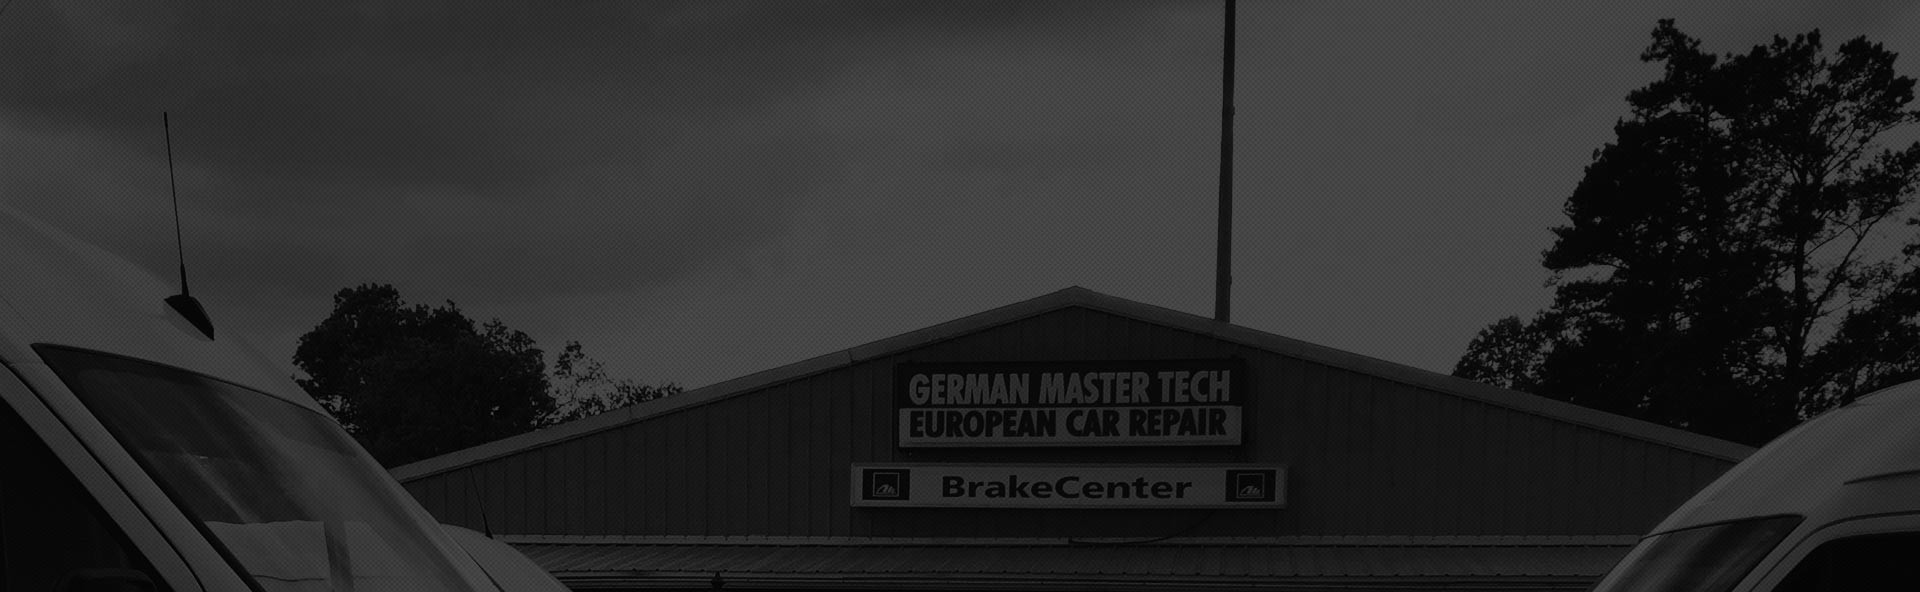 German Master Tech Auto Repair Shop in Alpharetta, GA